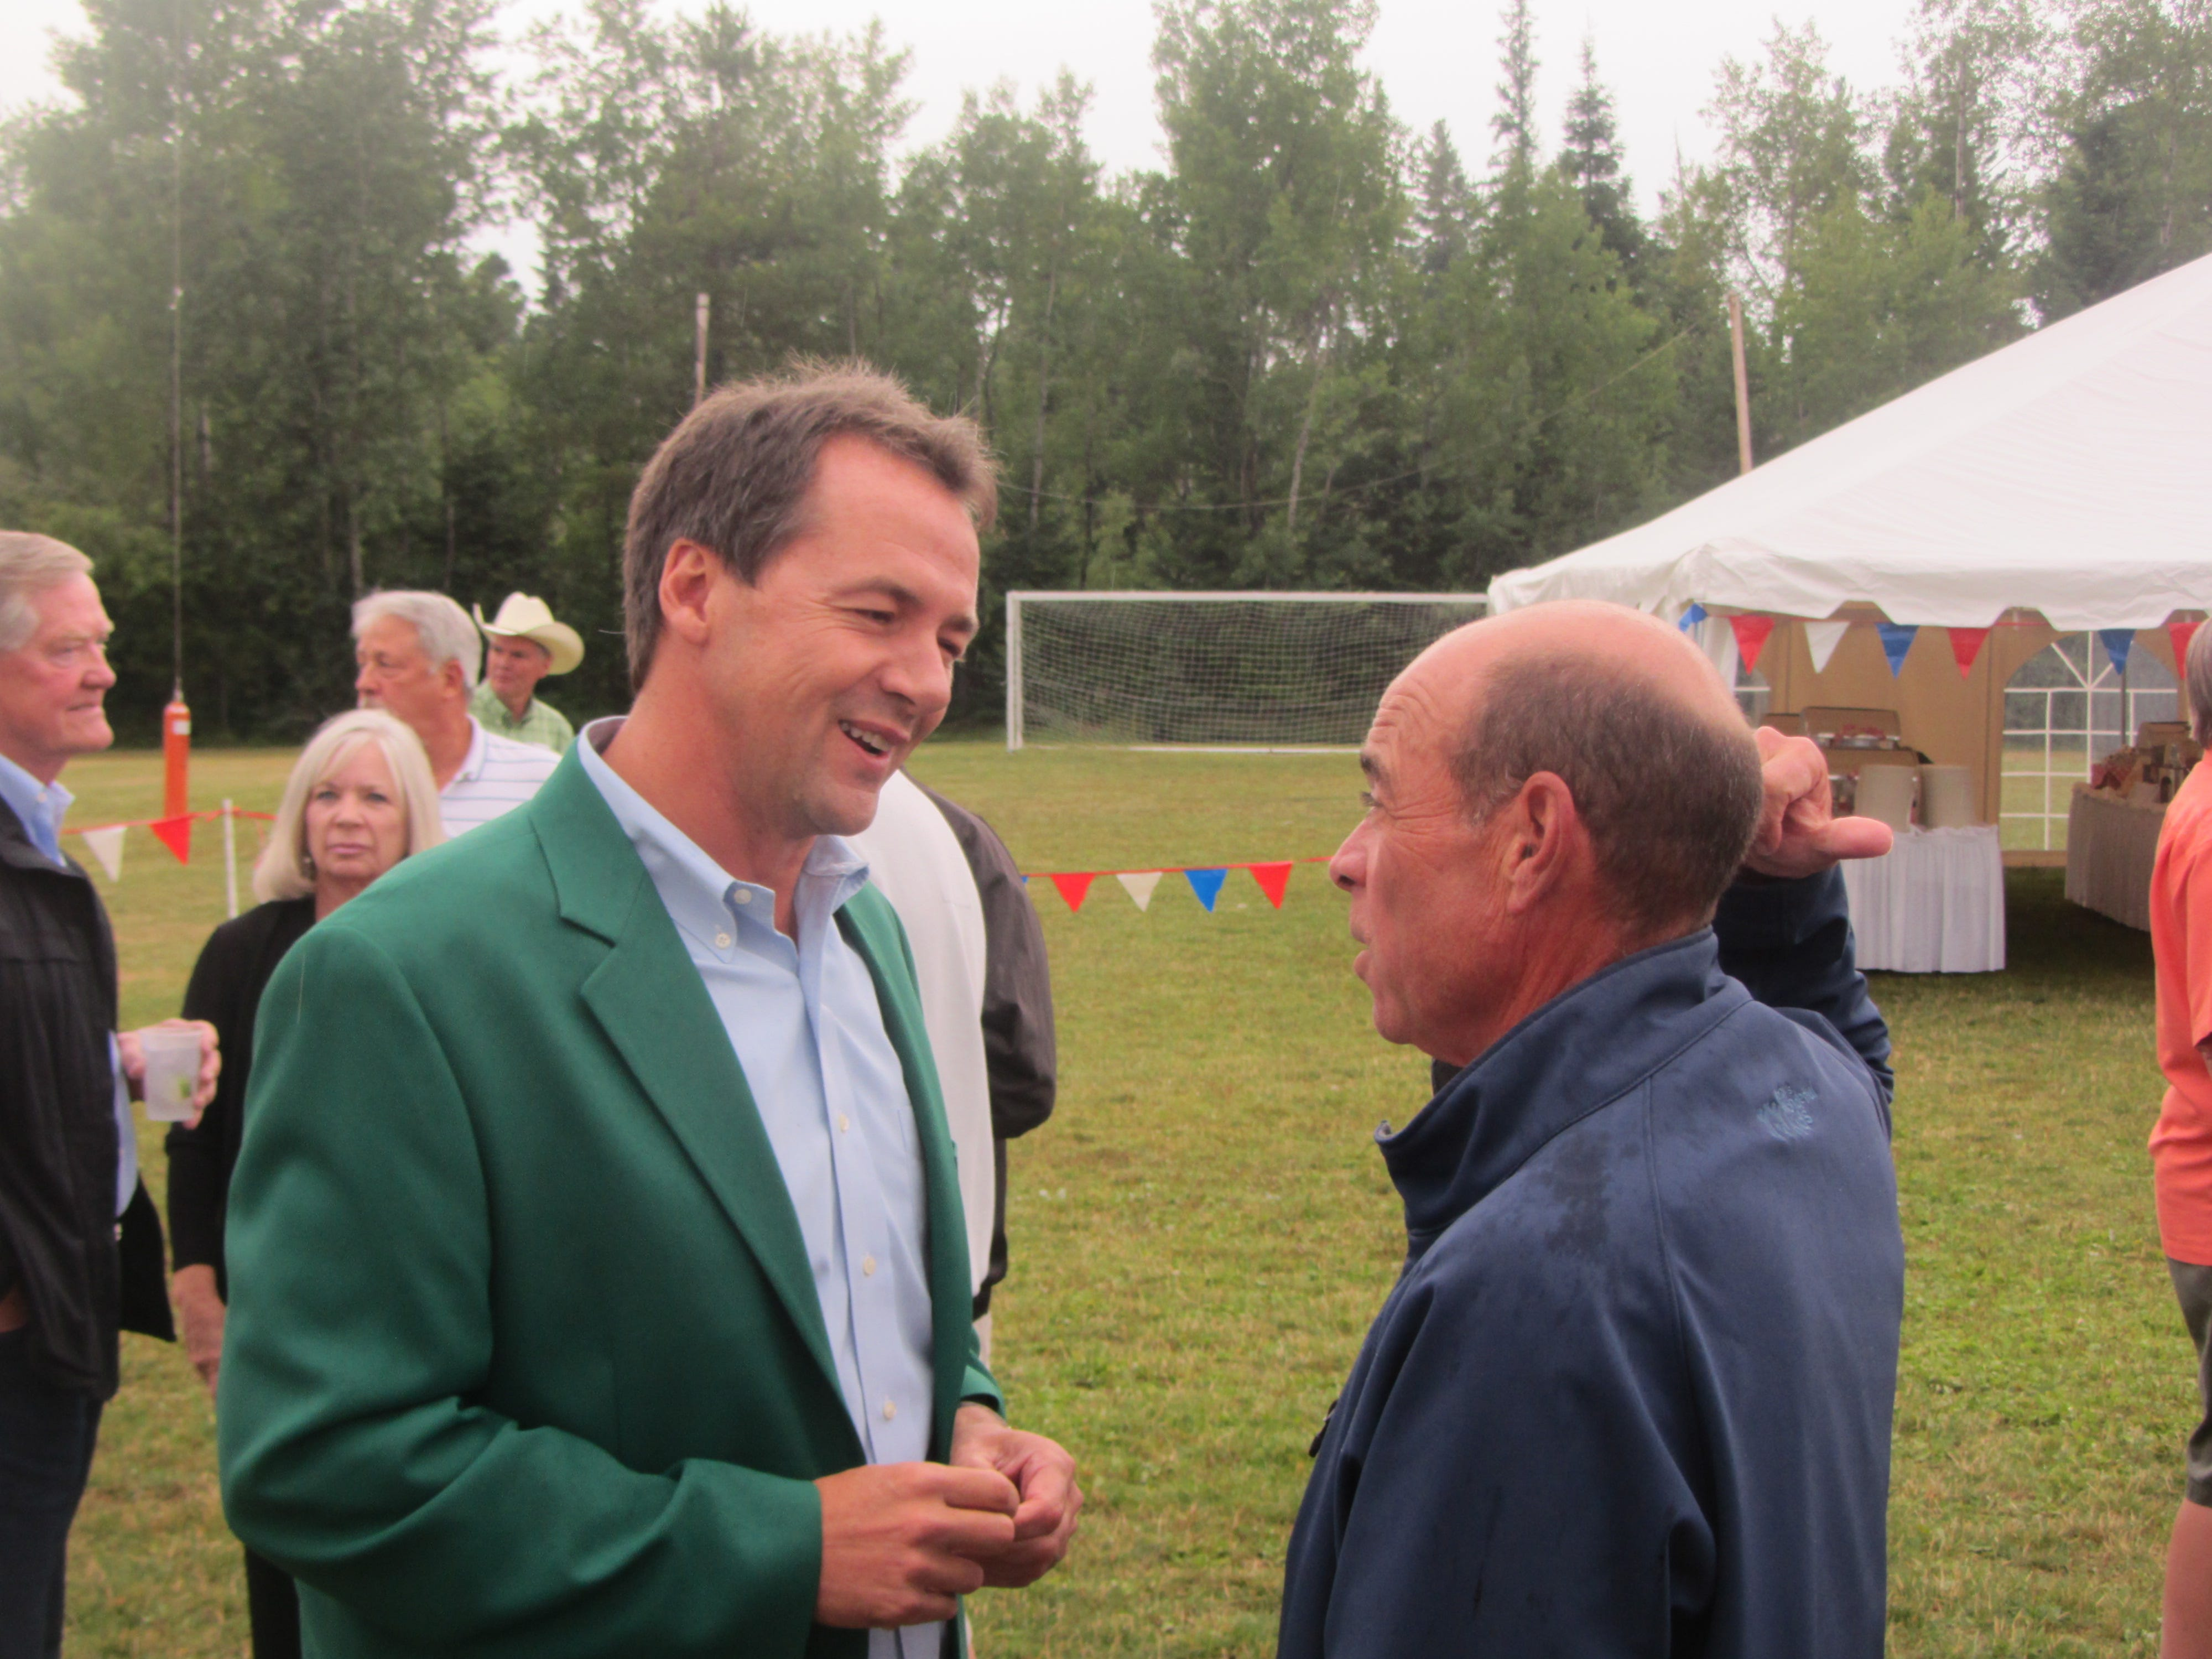 Gov. Steve Bullock visits with Montana Chamber of Commerce Foundation President Rick Reid at the Govenors' Cup golf tournament Thursday night in Whitefish. The chamber gives governors green jackets. Many statewide office holders and legislators attend. TRIBUNE PHOTO/PETER JOHNSON